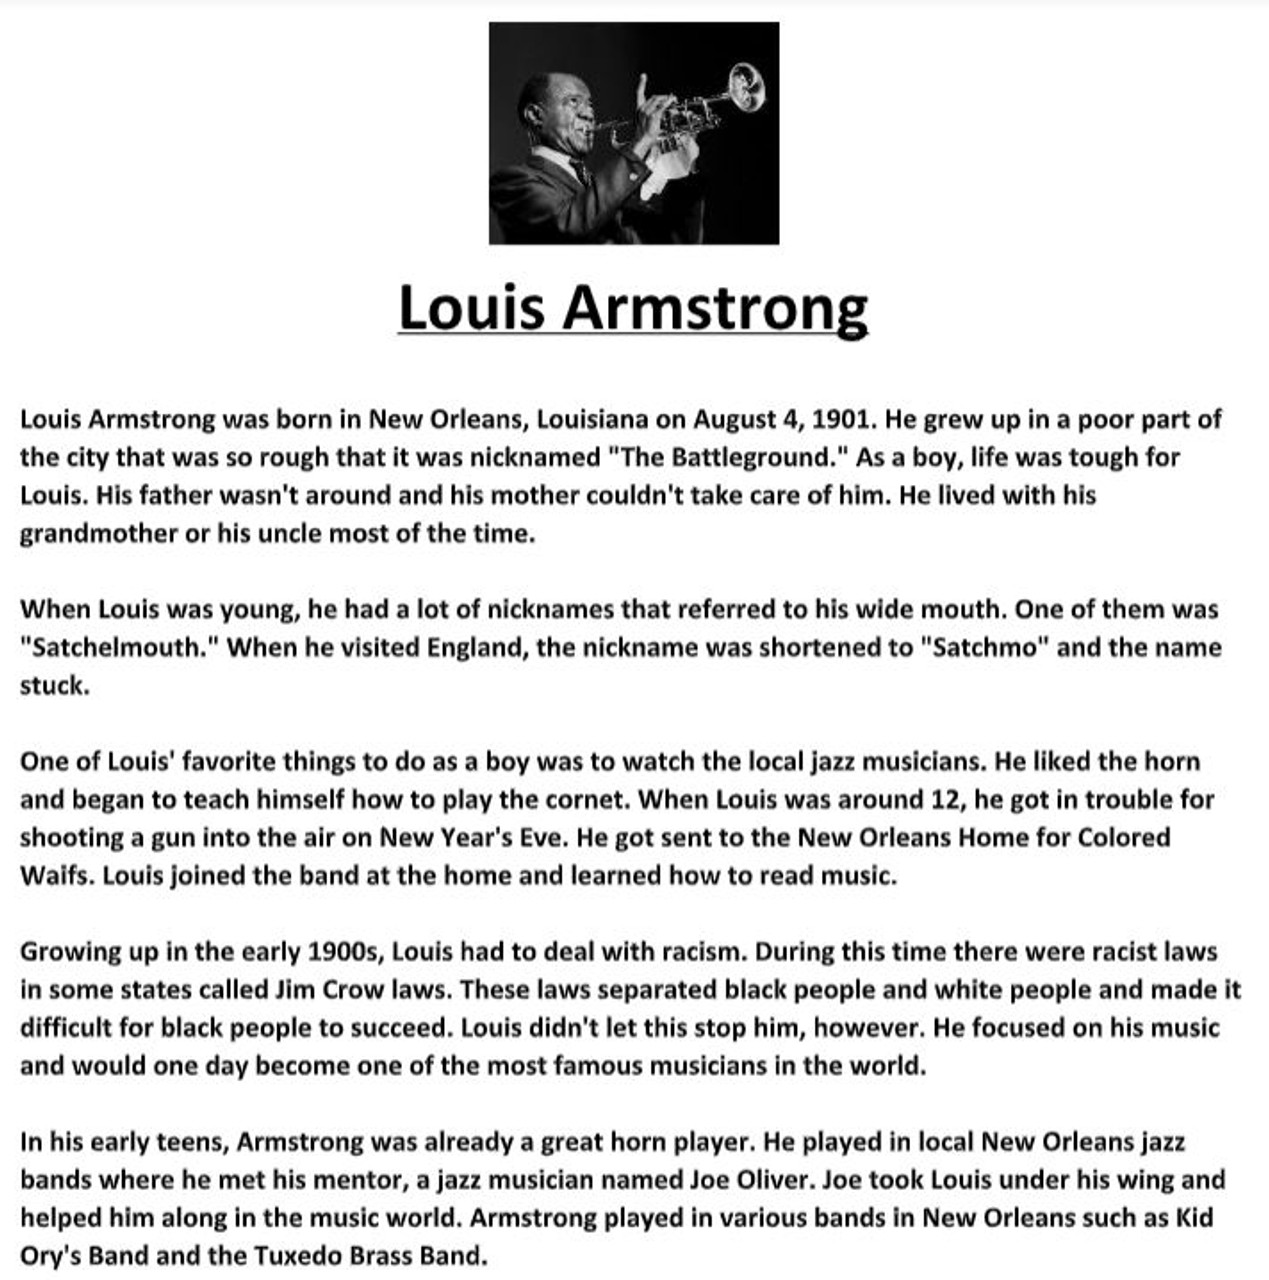 medium resolution of Louis Armstrong Biography Article and Assignment Worksheet - Amped Up  Learning